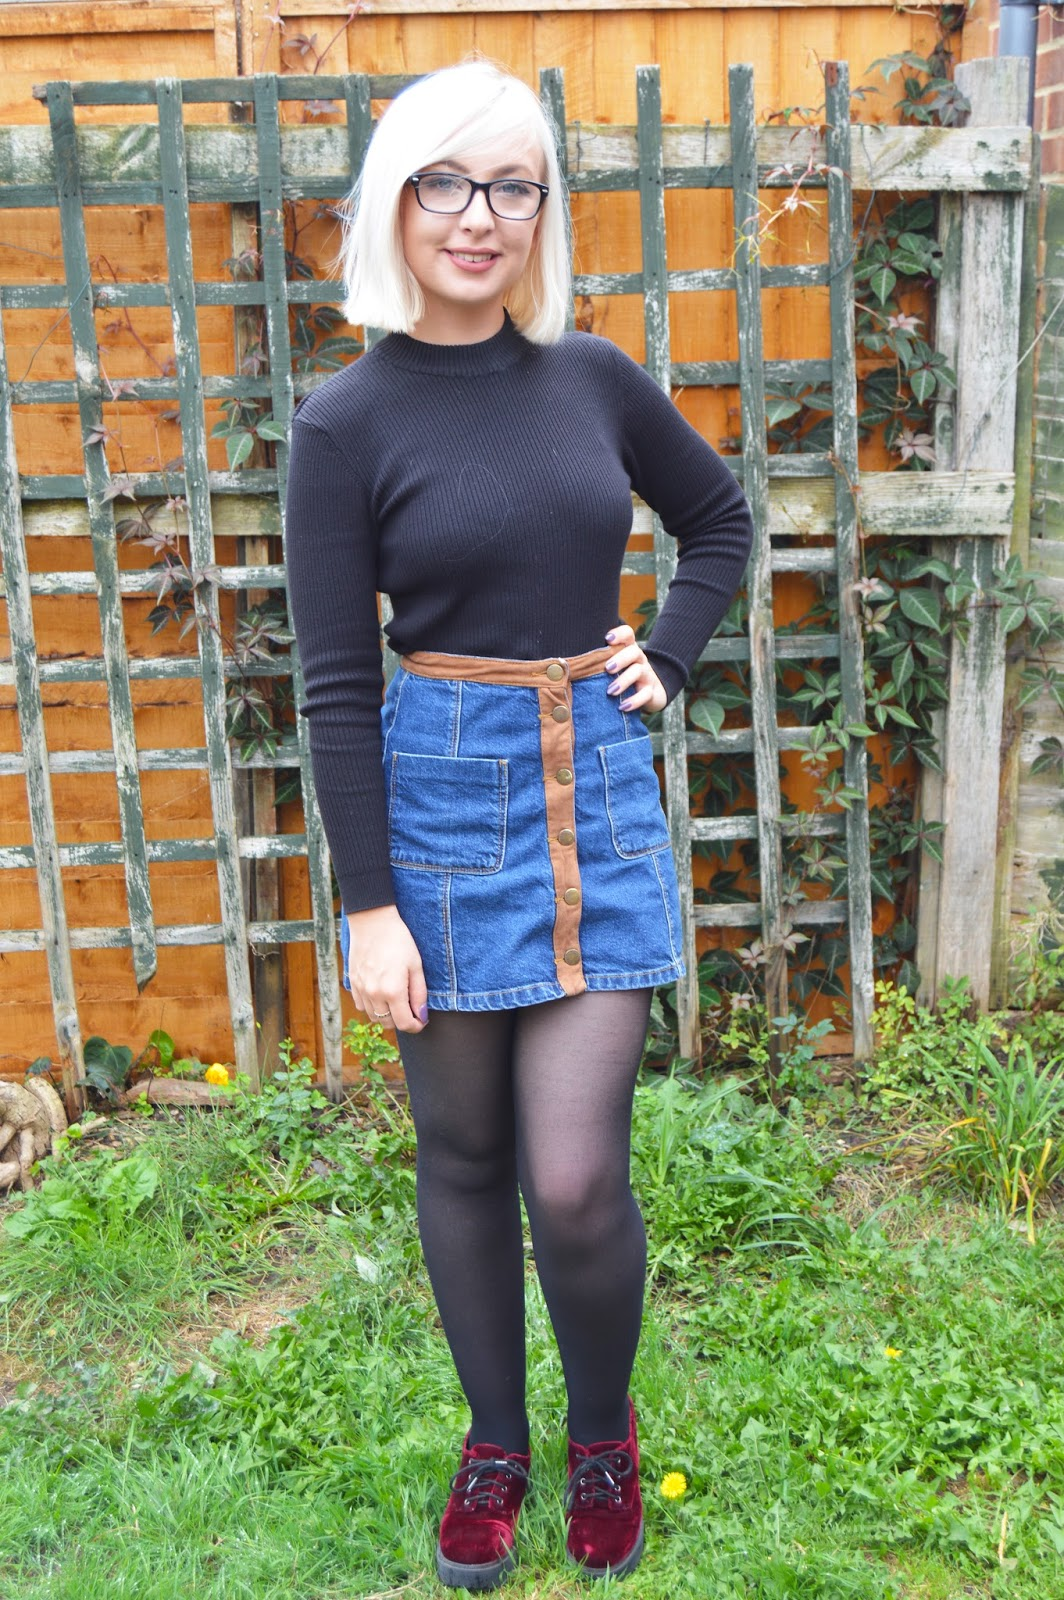 Short blonde hair bershka denim skirt